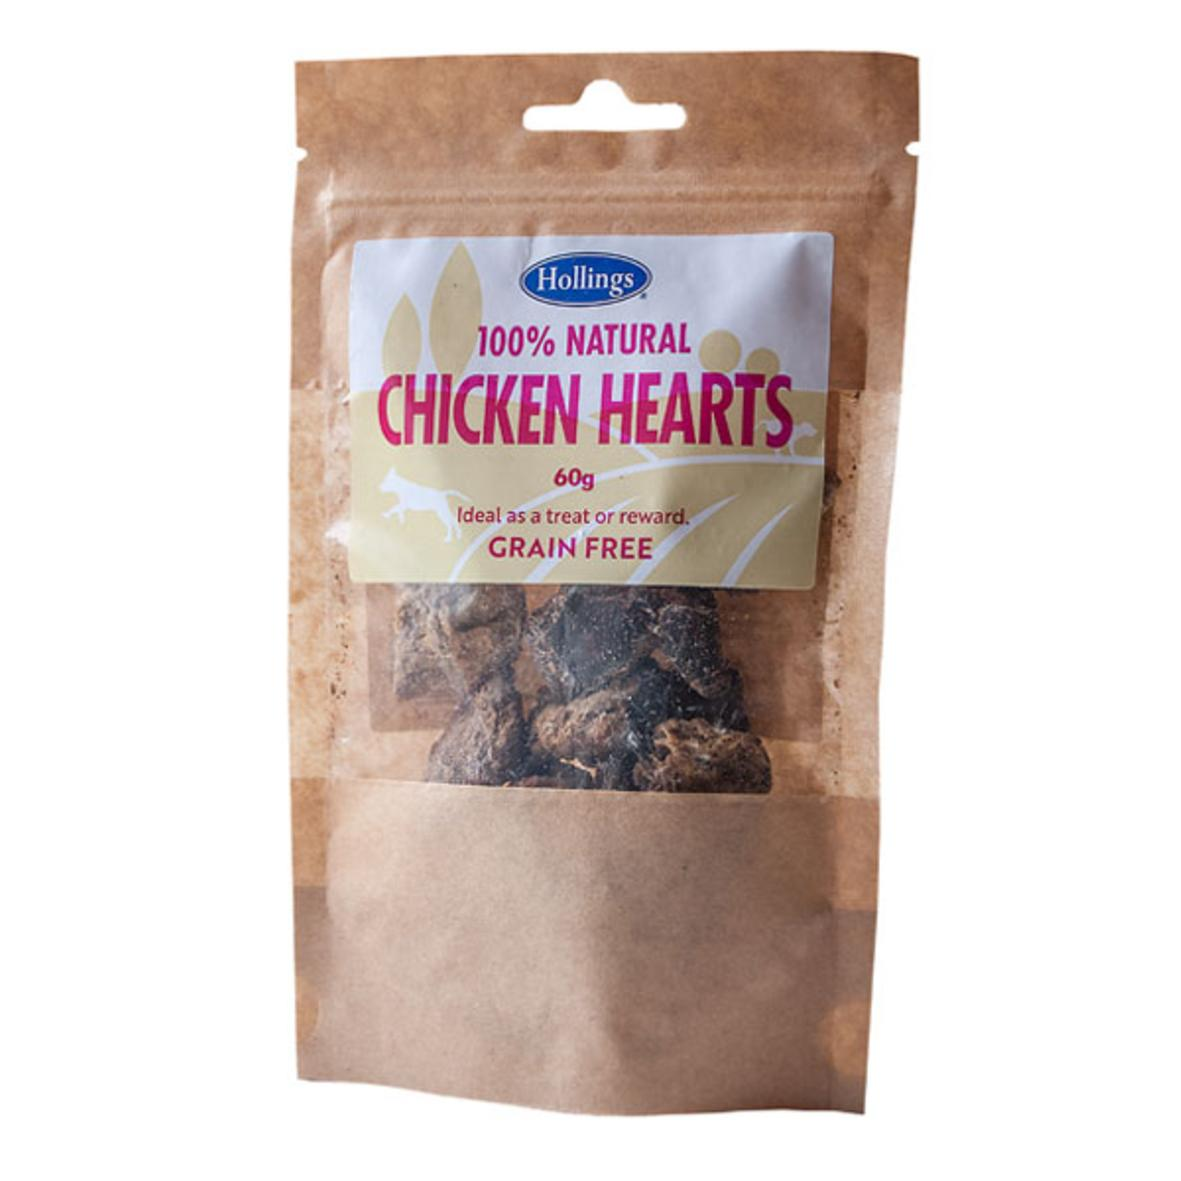 Hollings Chicken Hearts 60g